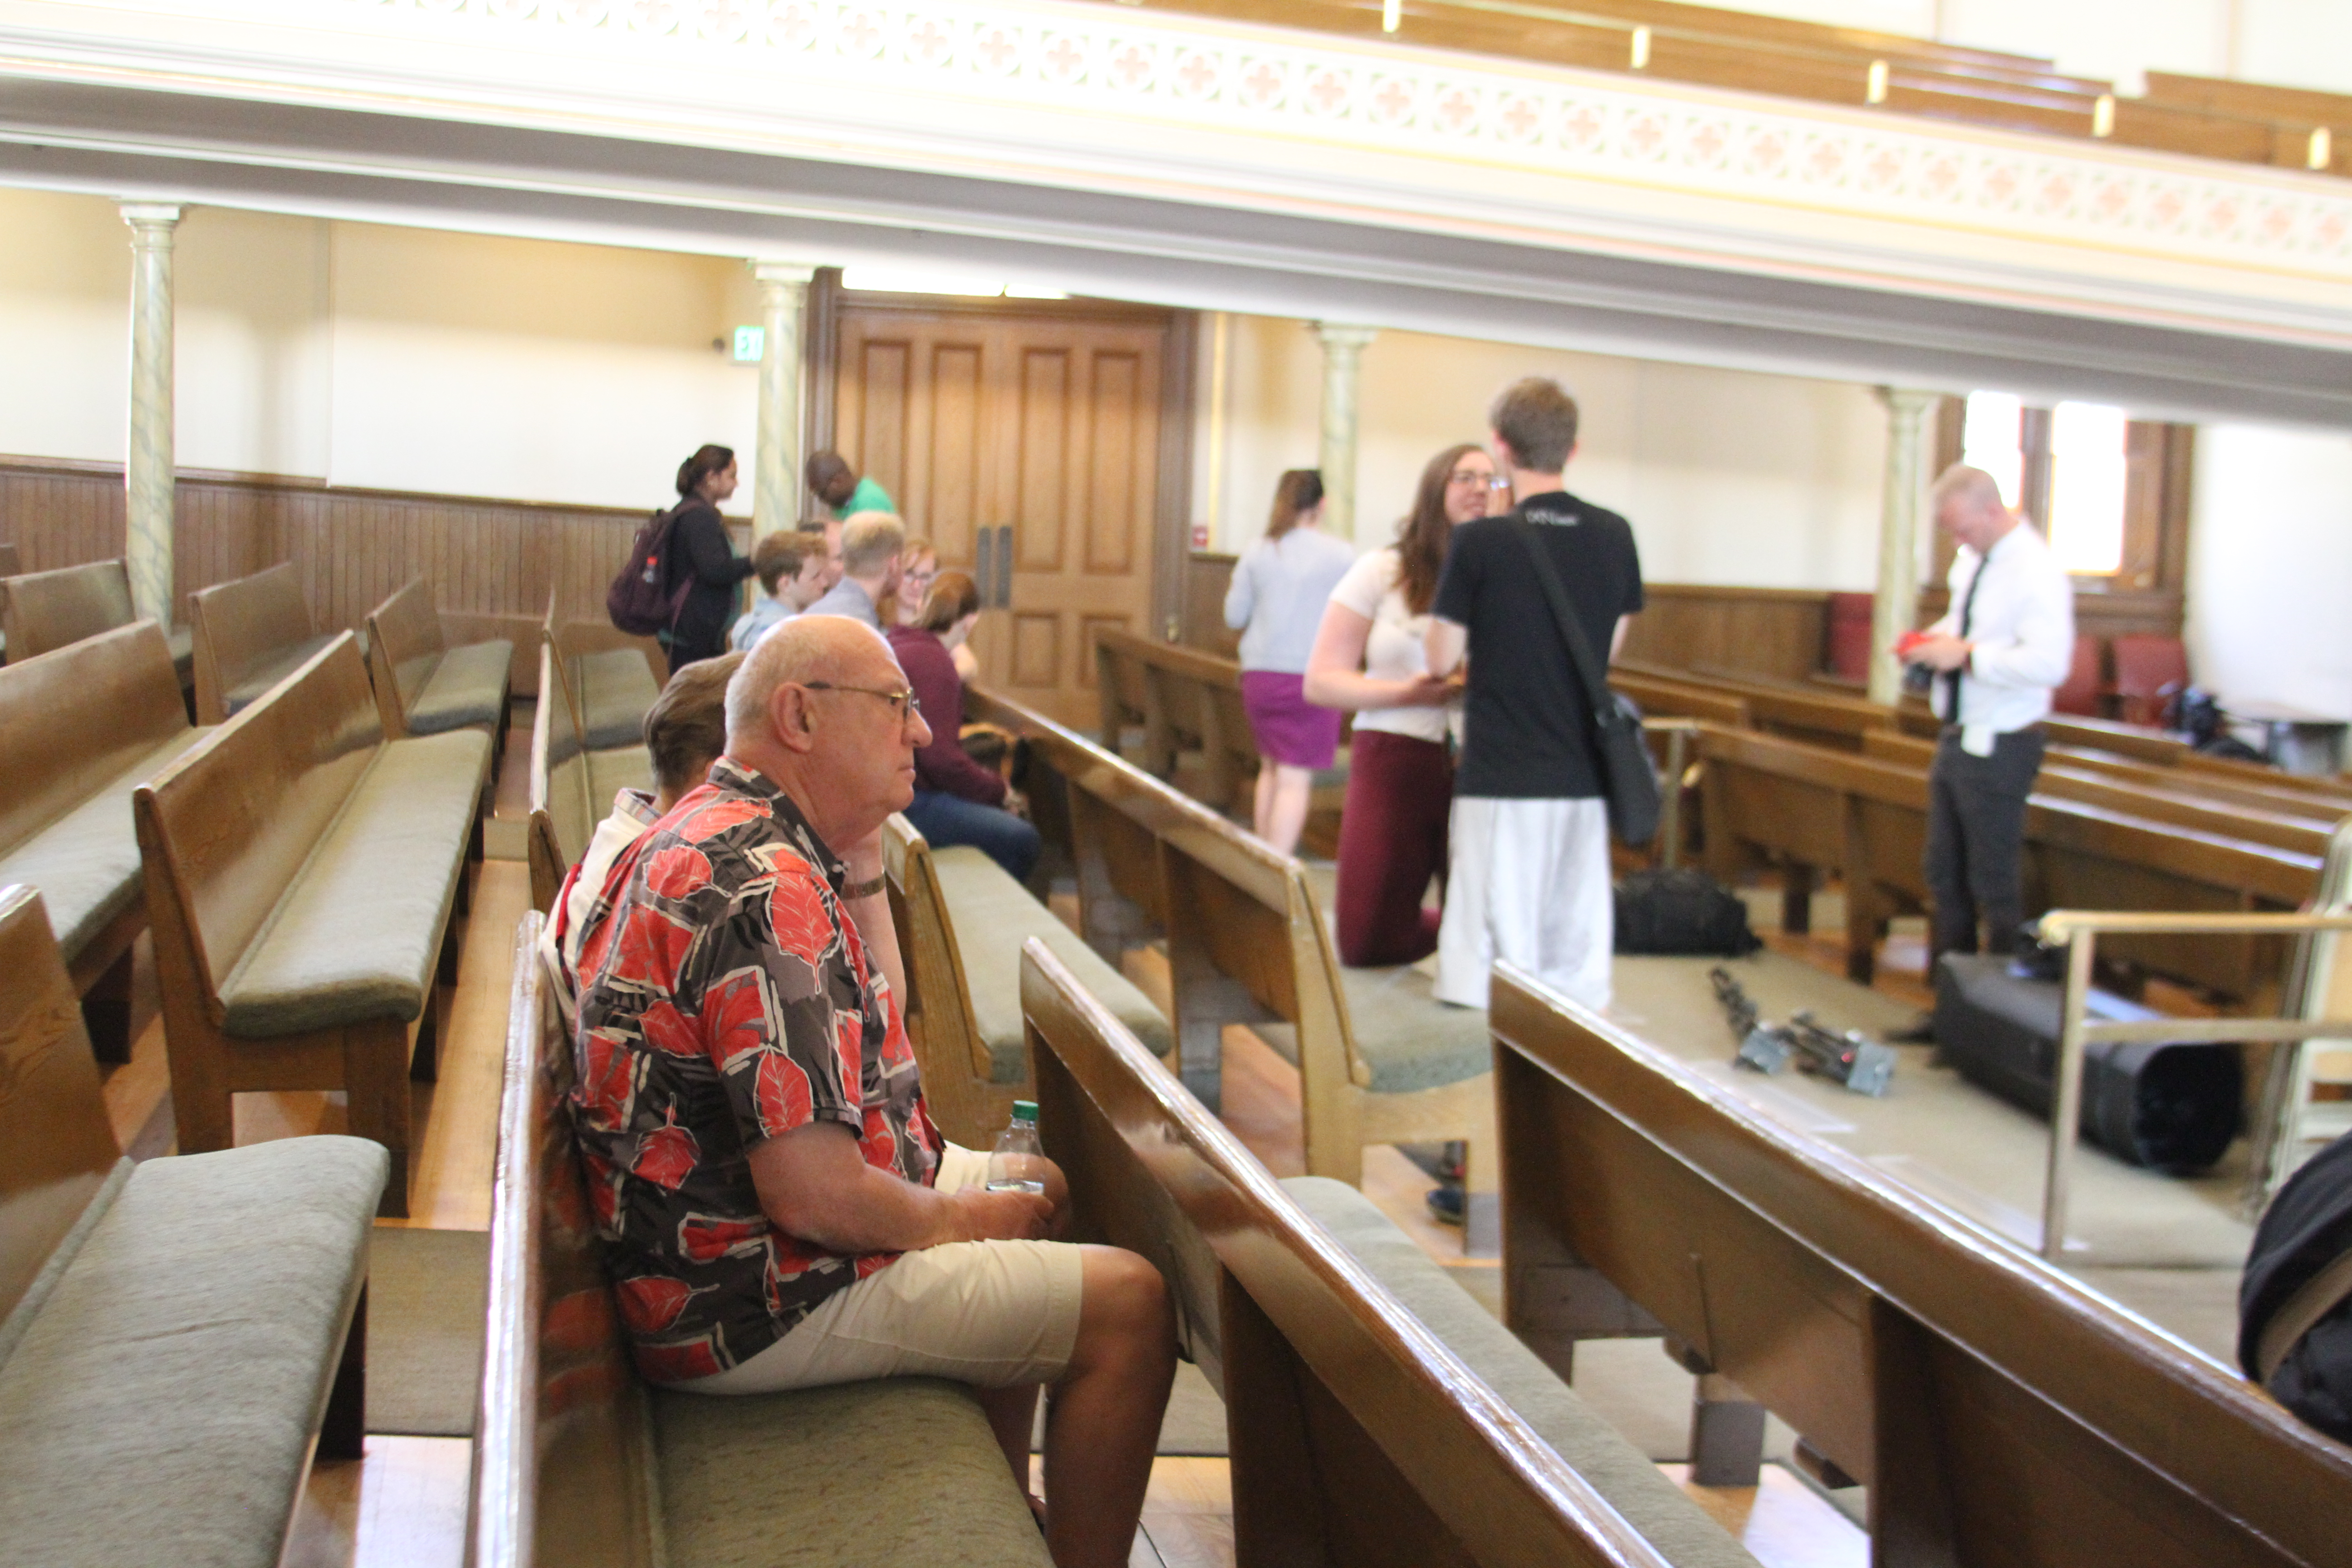 Attendees slowly file into the Assembly Hall on Temple Square and wait for Elder Kent F. Richards, emeritus General Authority Seventy, to speak at an LDSBC devotional address on Tuesday, June 11, 2019.